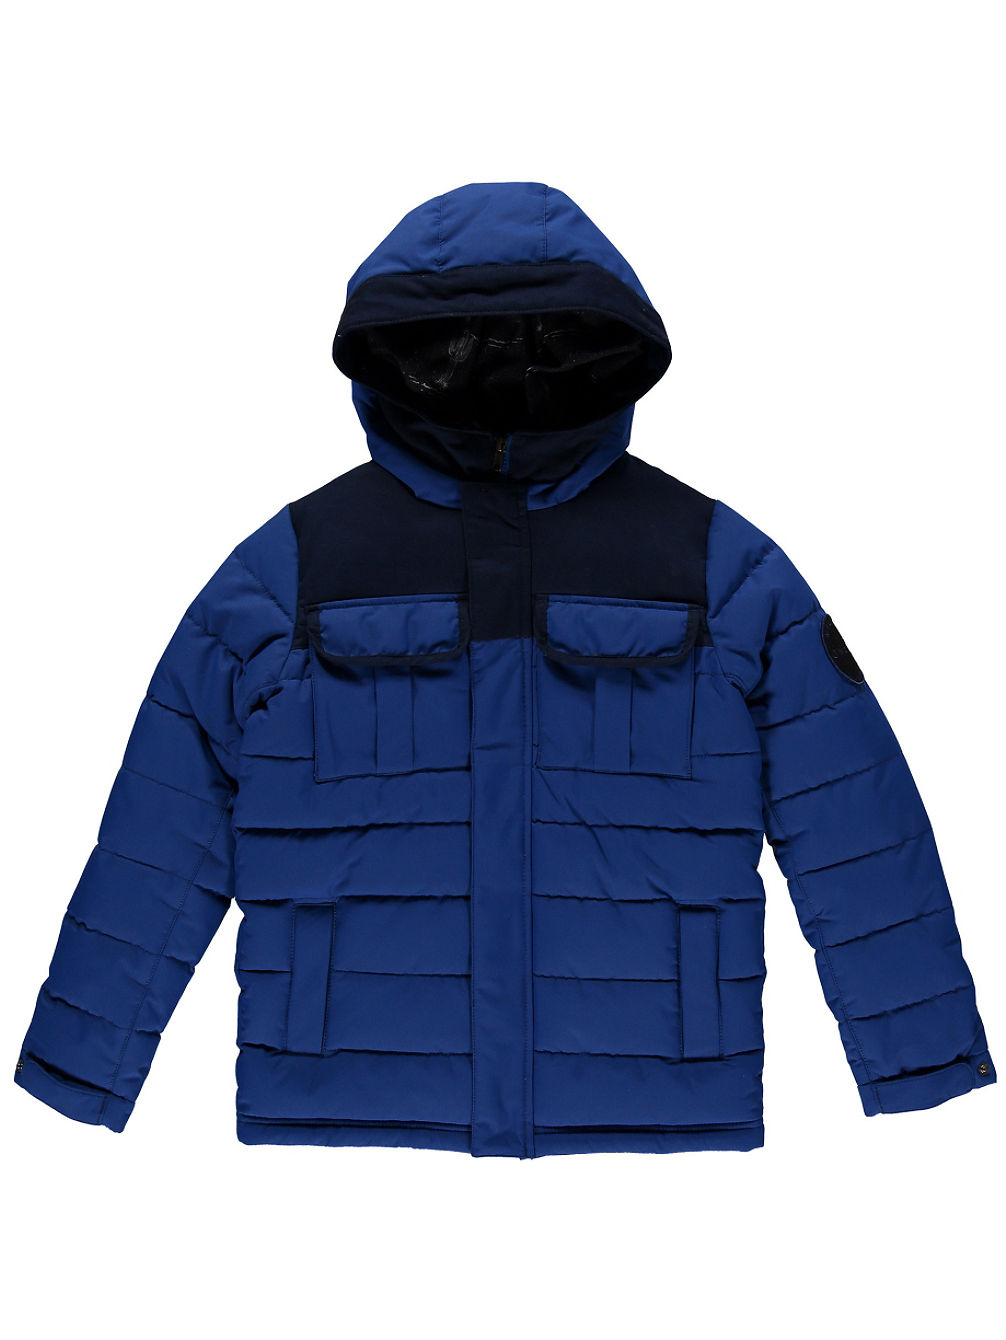 Charger Hood Jacket Boys